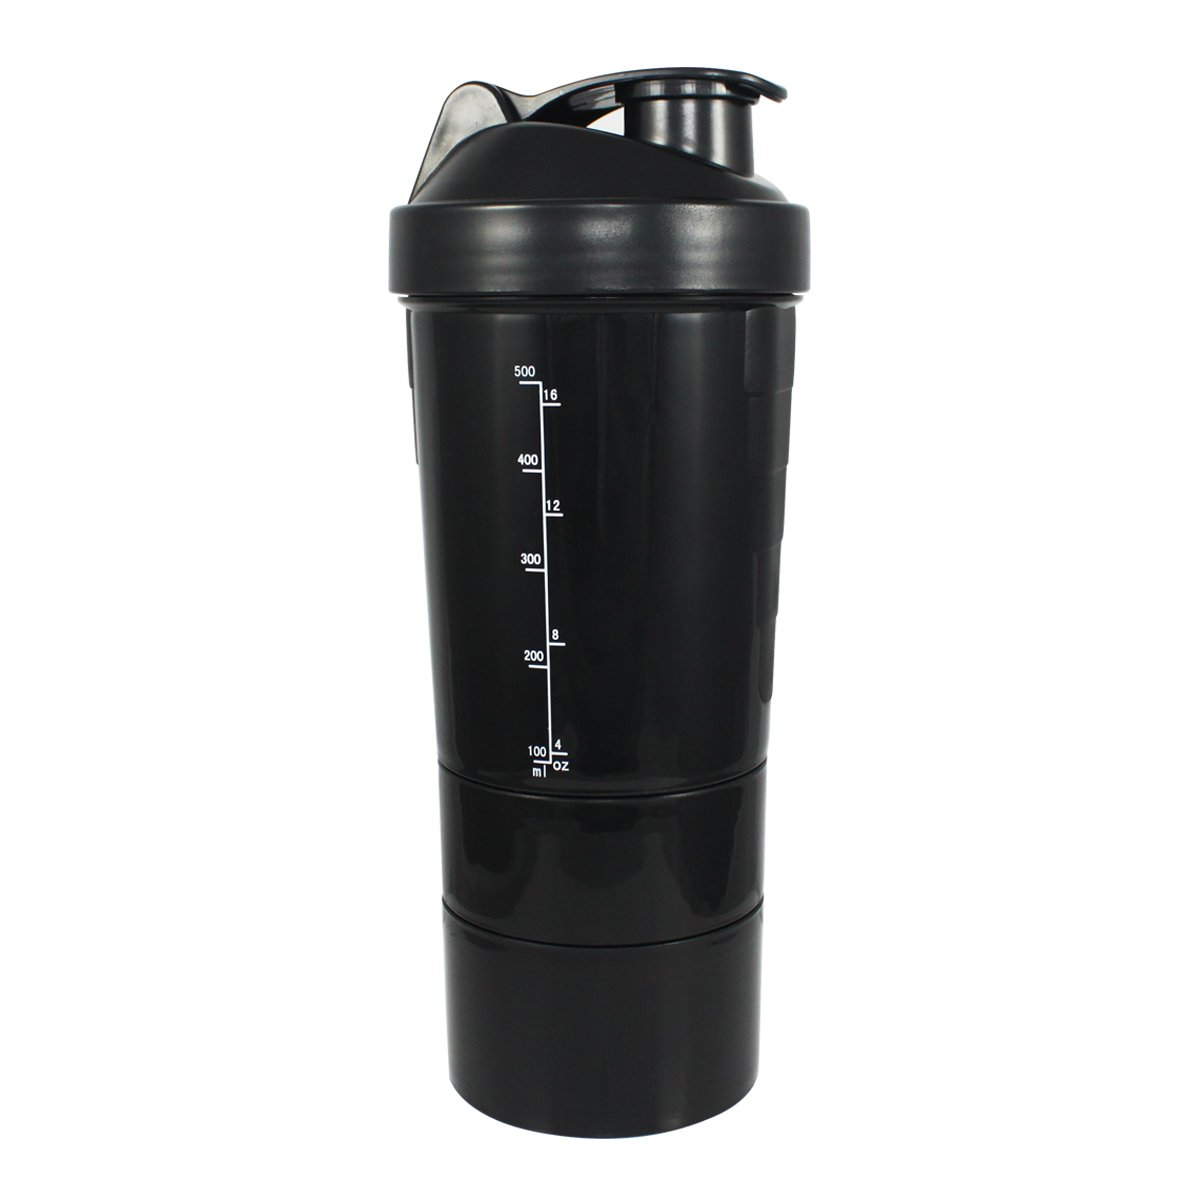 SuperShaker Shaker Bottle with Advanced Multistack Storage Compartments by SuperShaker: Amazon.es: Hogar